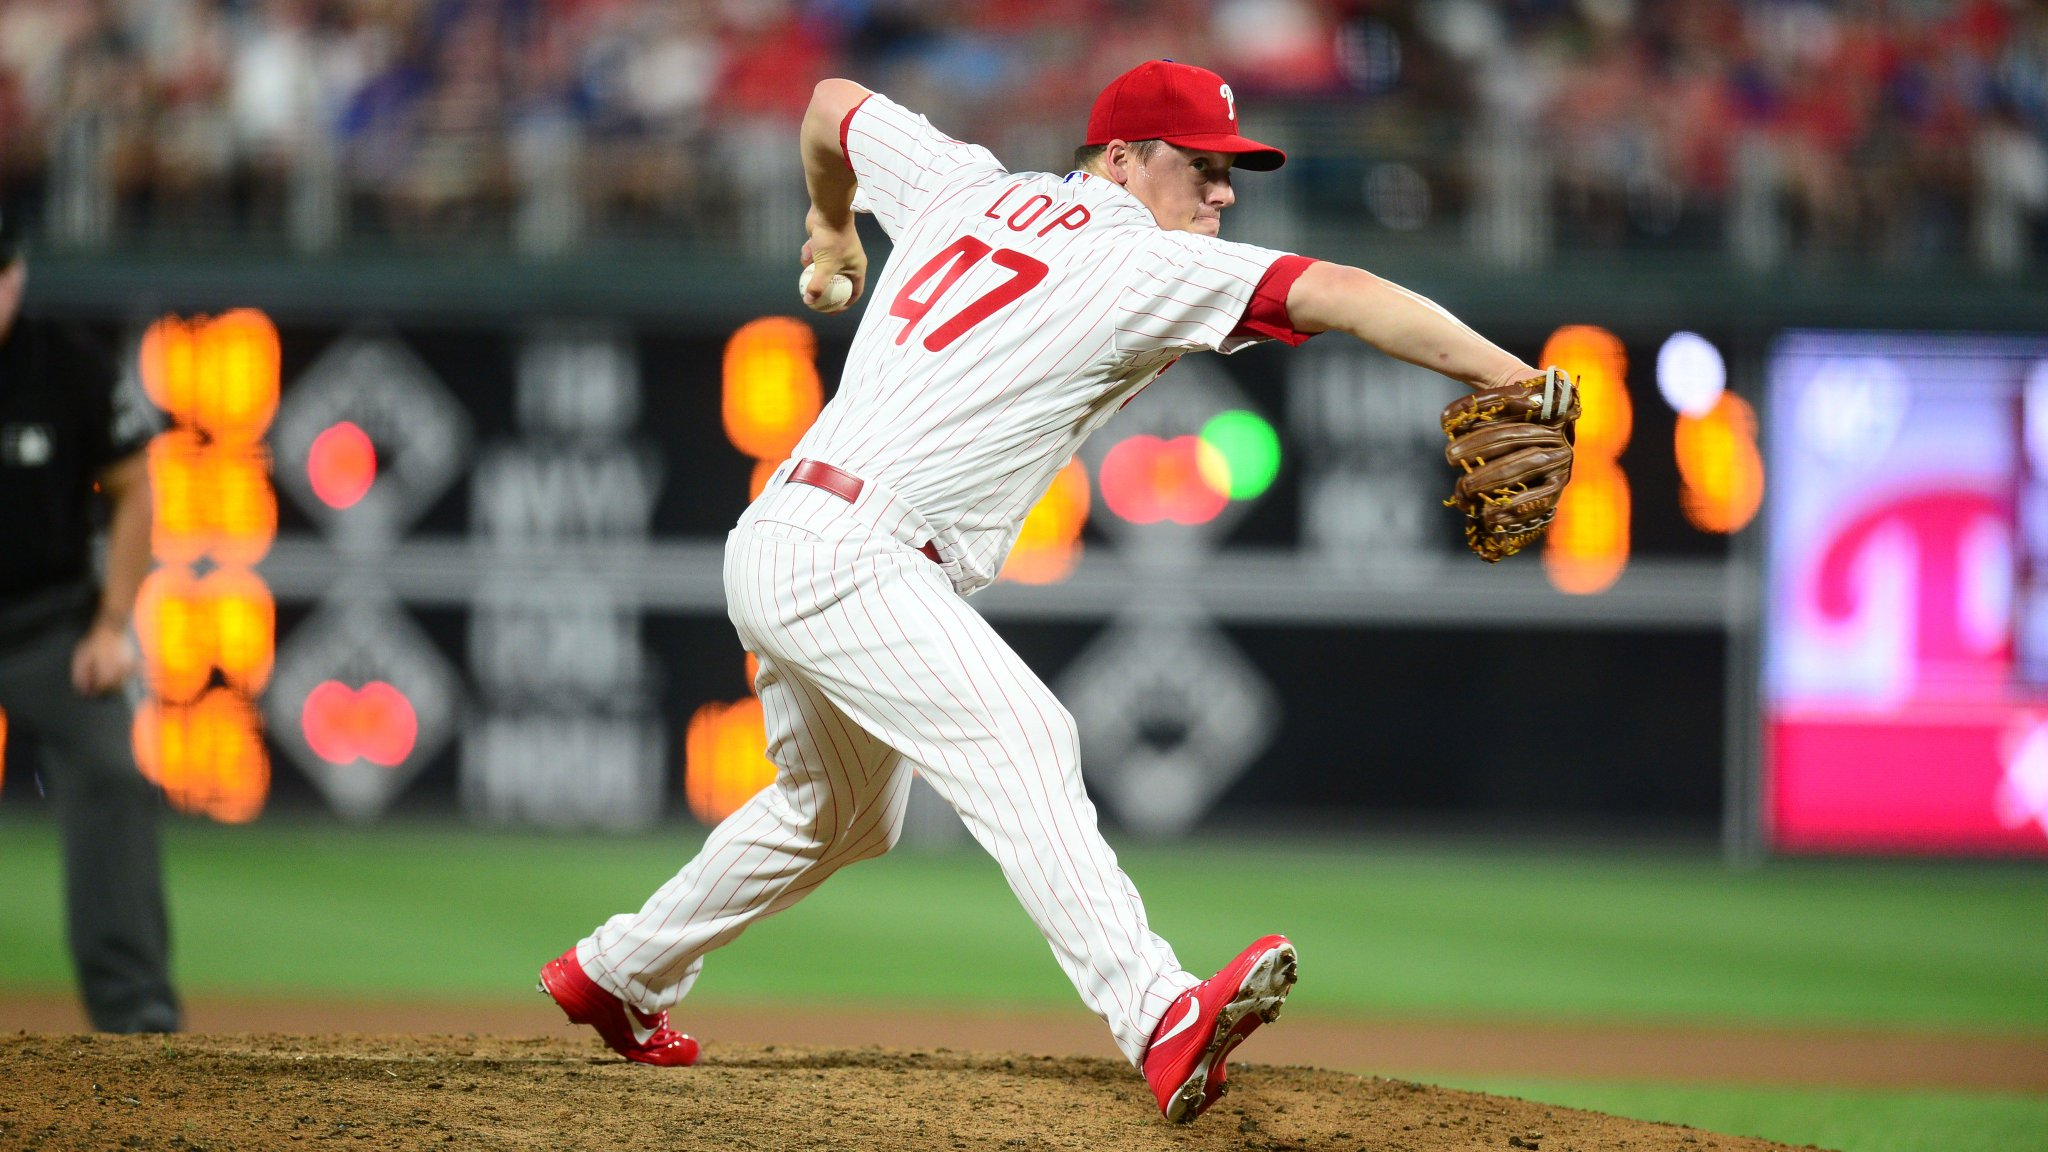 #Phillies have reinstated LHP Aaron Loup from the 10-day DL. https://t.co/hhtS9n33MC